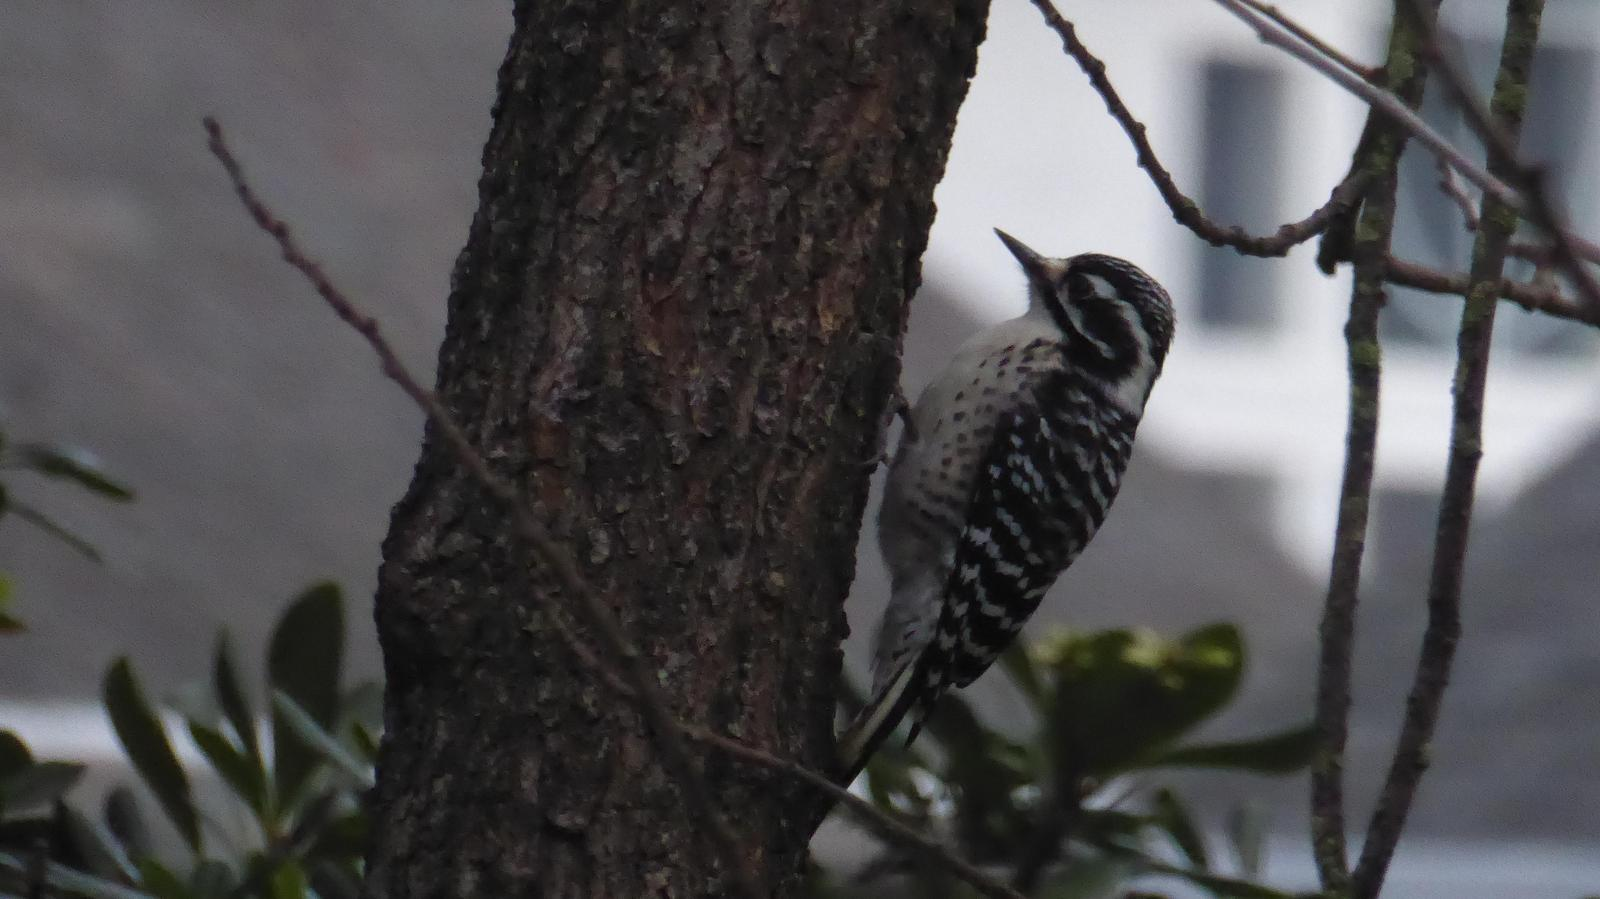 Nuttall's Woodpecker Photo by Daliel Leite